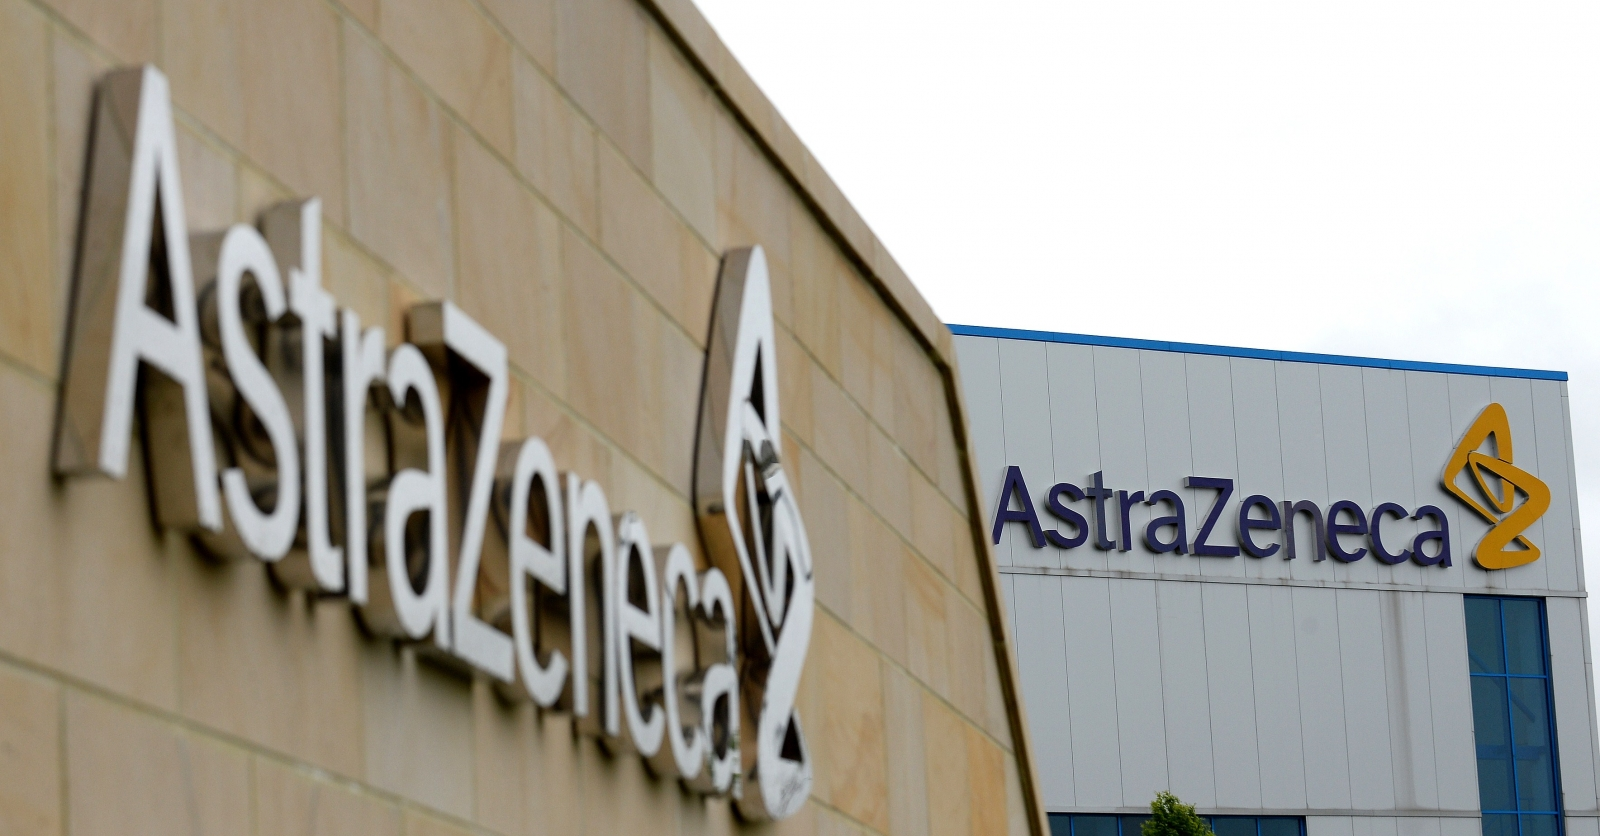 AstraZeneca reports 3% decline in half yearly revenues to $11.72bn